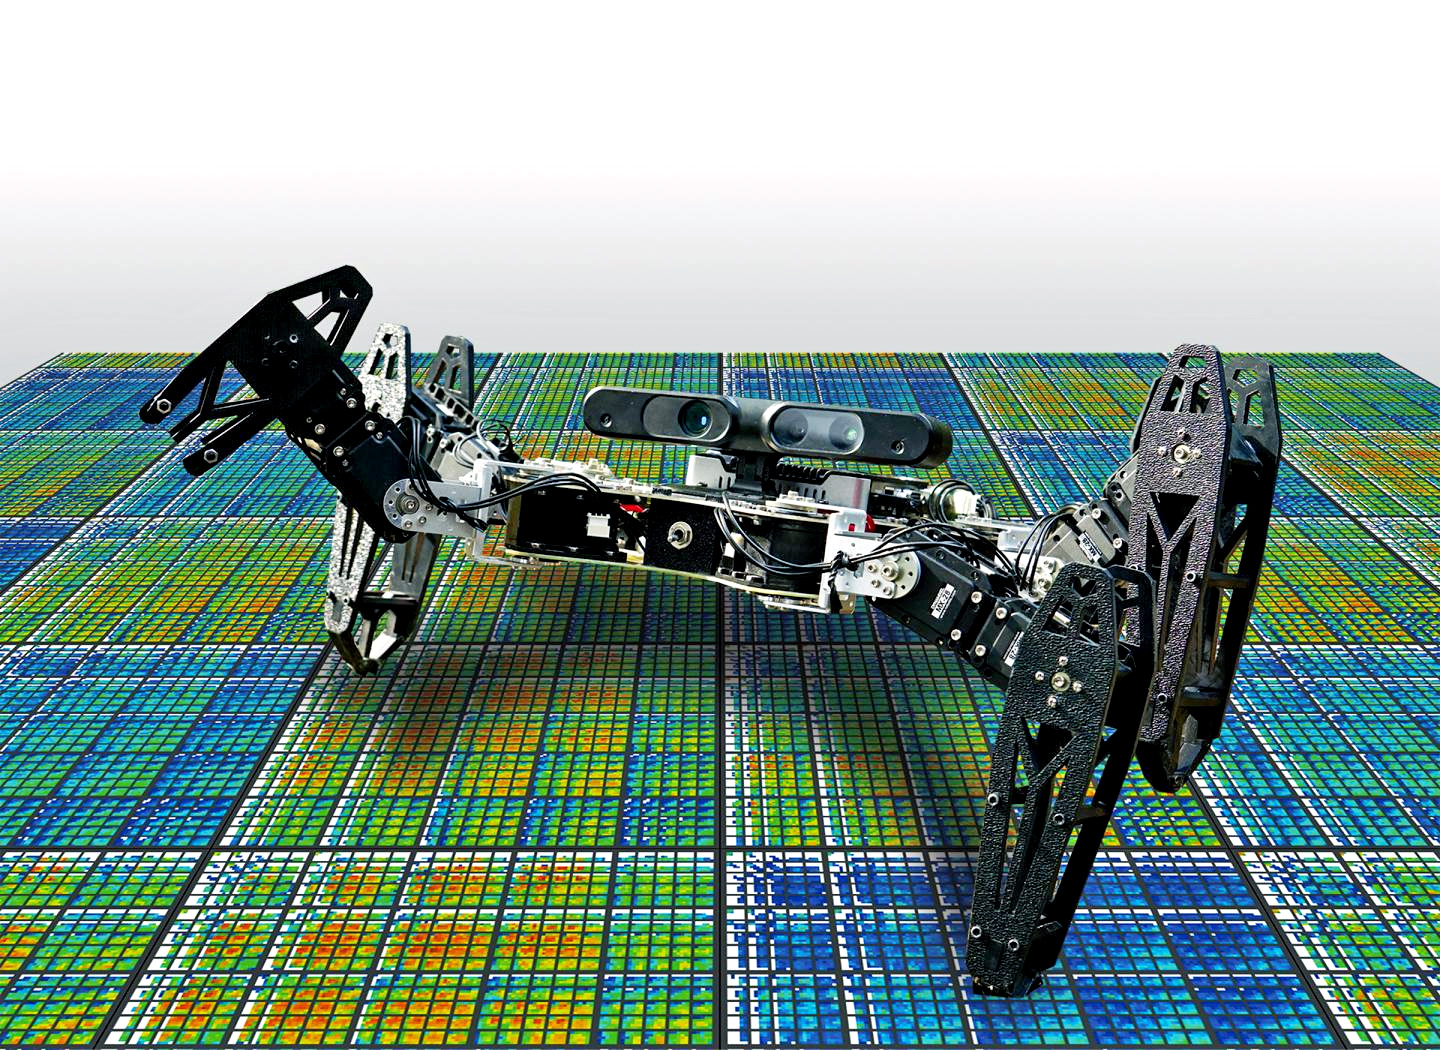 This robot can adapt to injuries